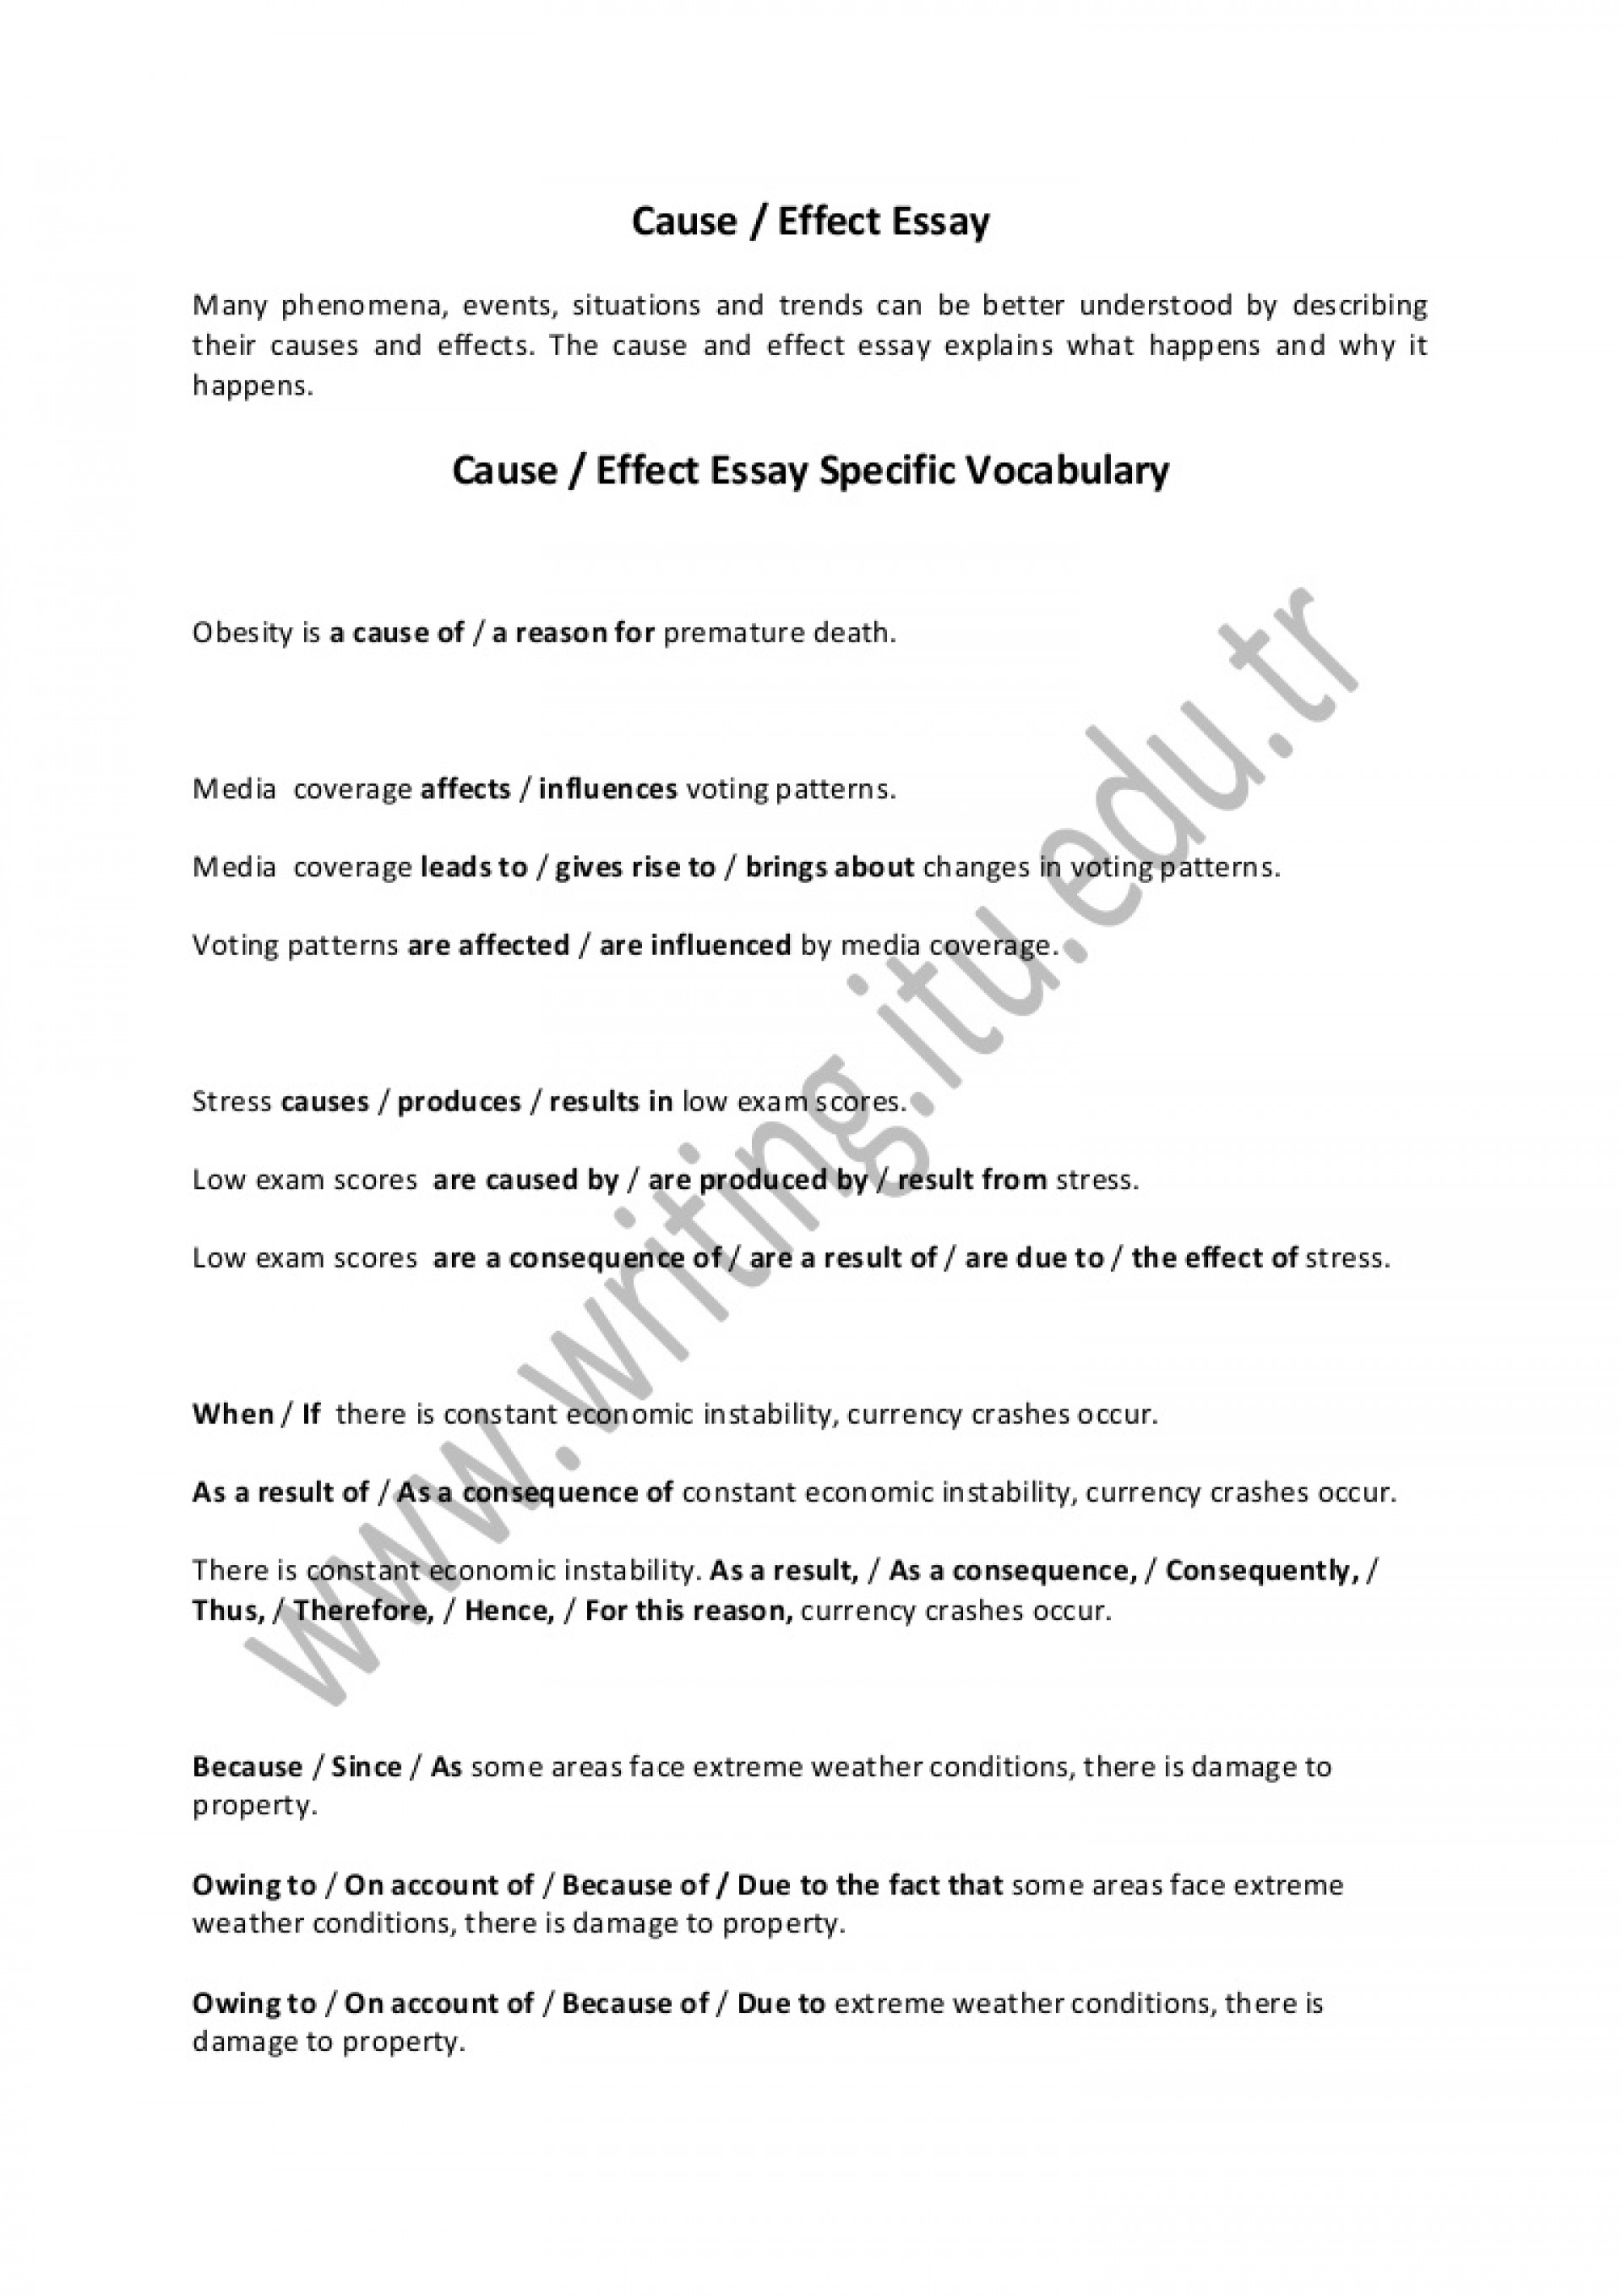 011 Essay Example Cause And Effect Causeandeffectessay Thumbnail Dreaded Samples Pdf Template Free 1920